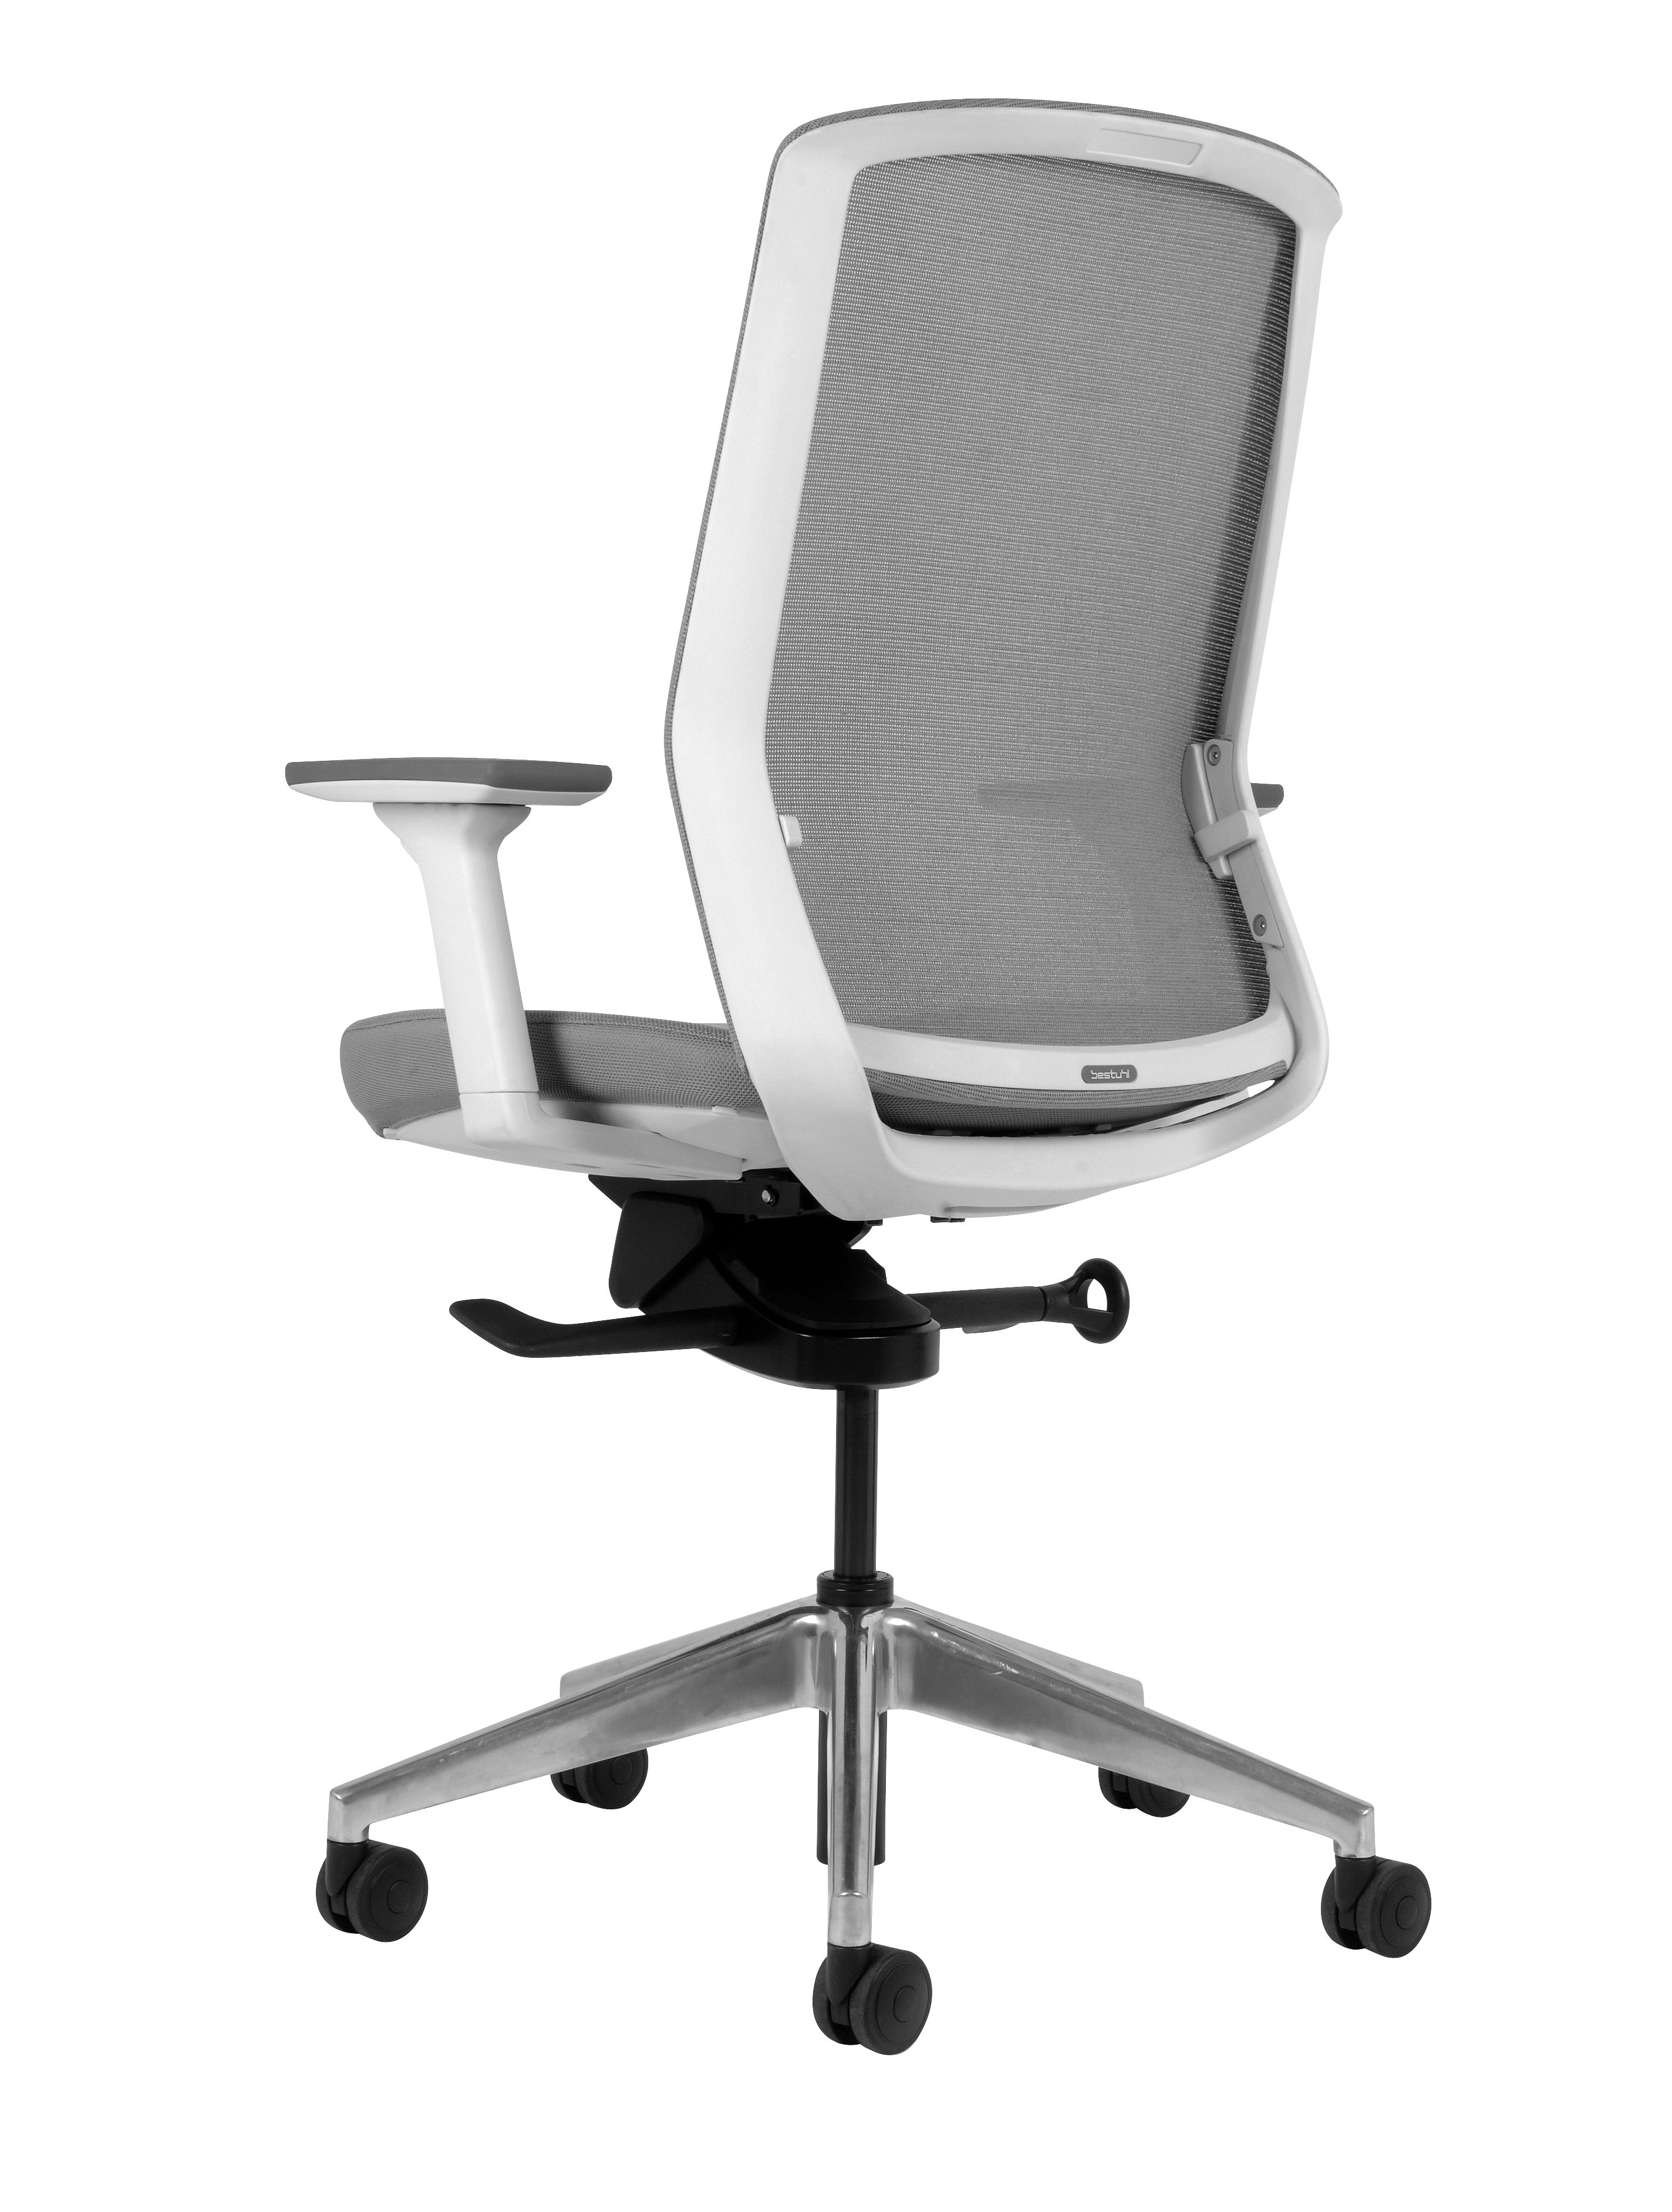 J1 Swivel chair desk, Chair, Traditional office chairs